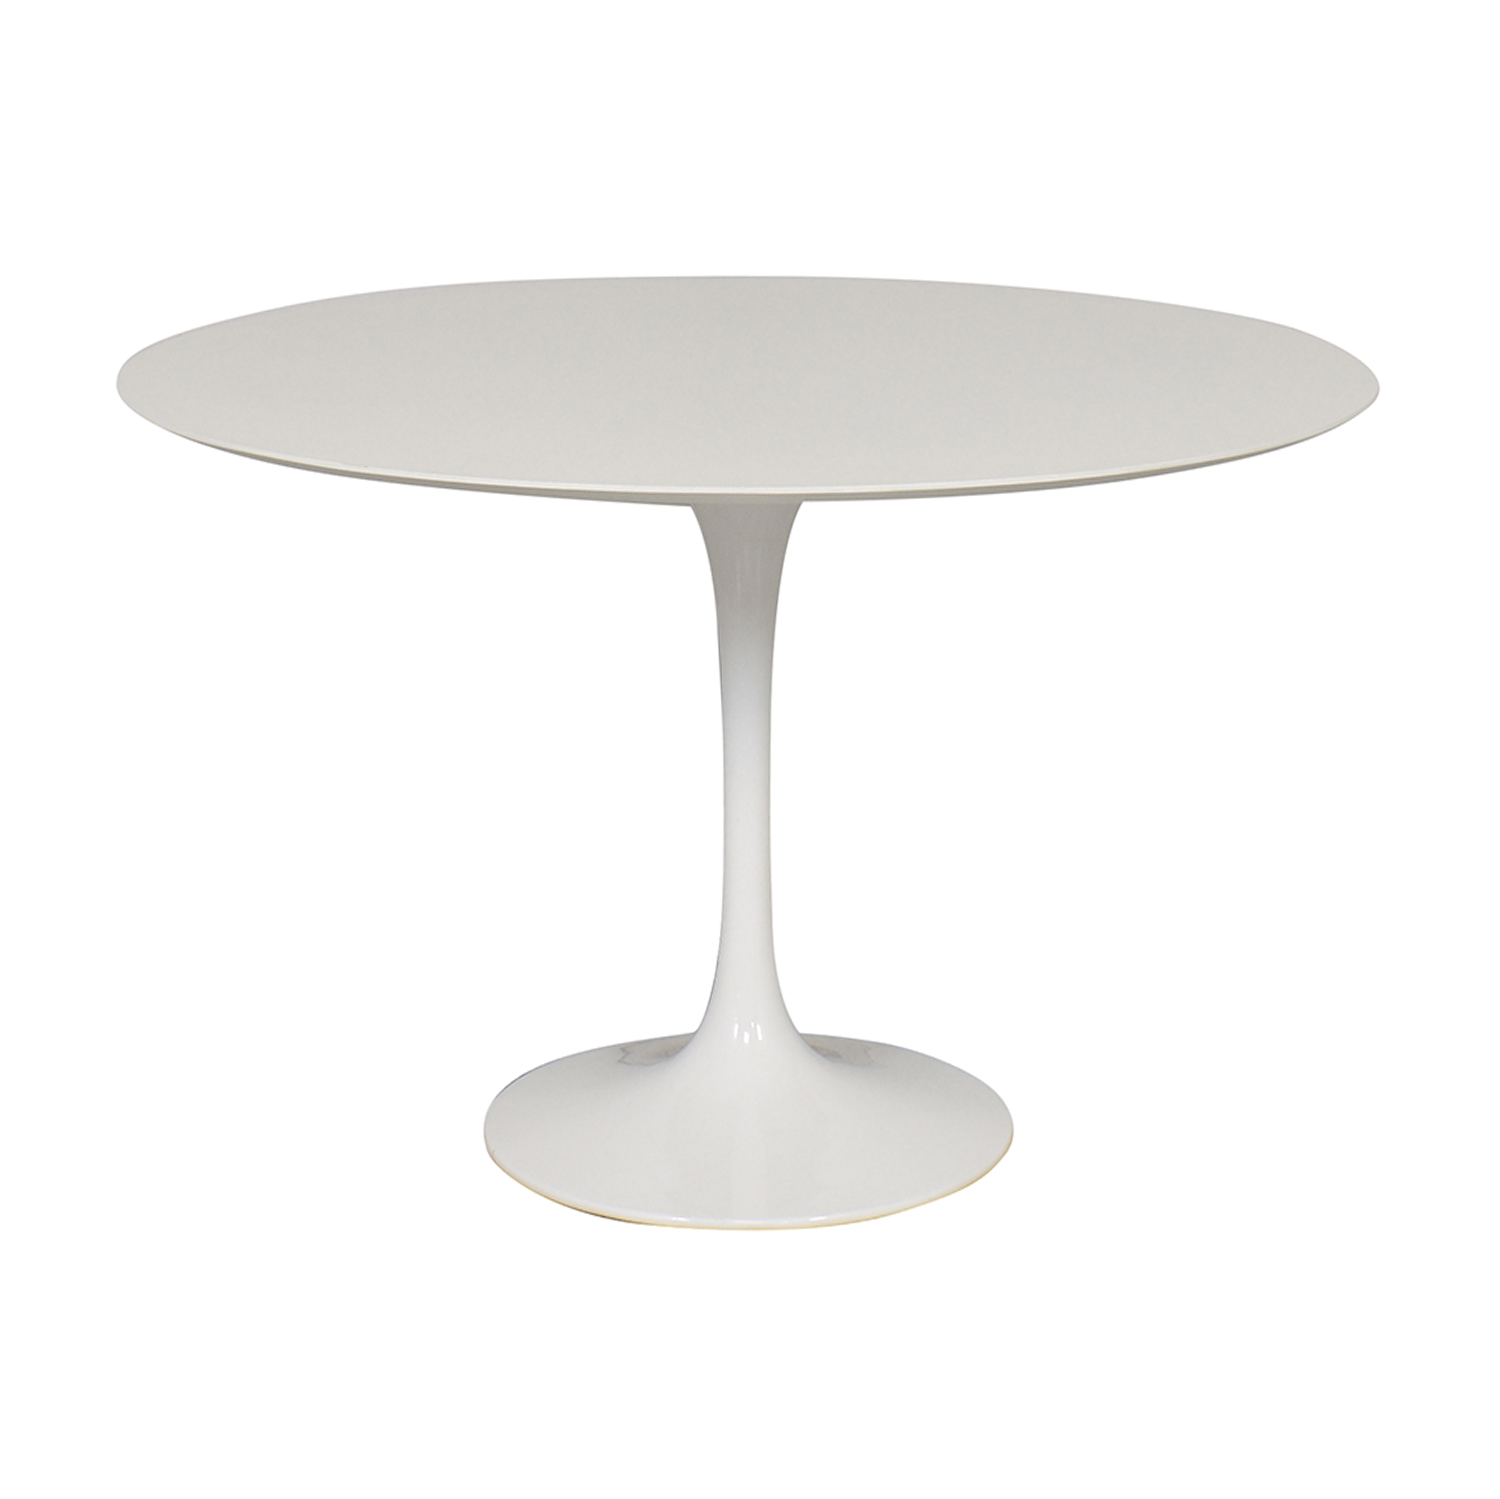 Corrigan Studio Corrigan Studio Angelica Dining Table nyc